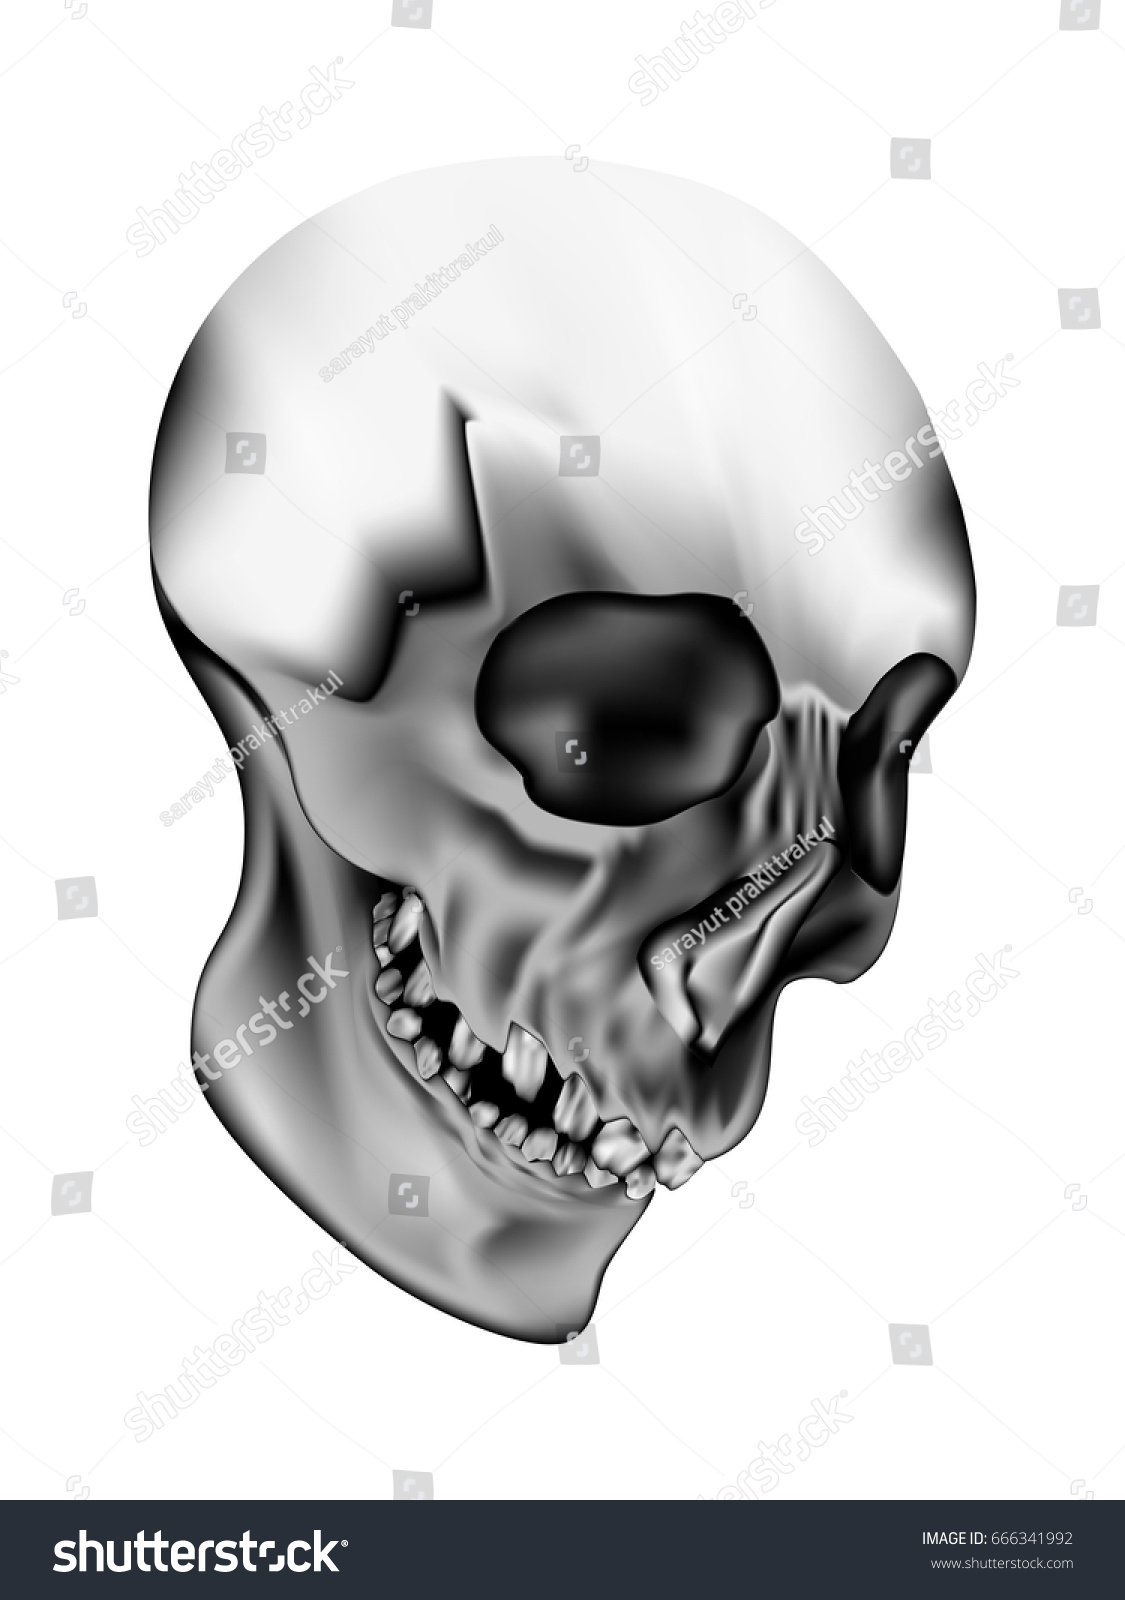 Visual Drawing Human Skull On Black Stock Vector 666341992 ...